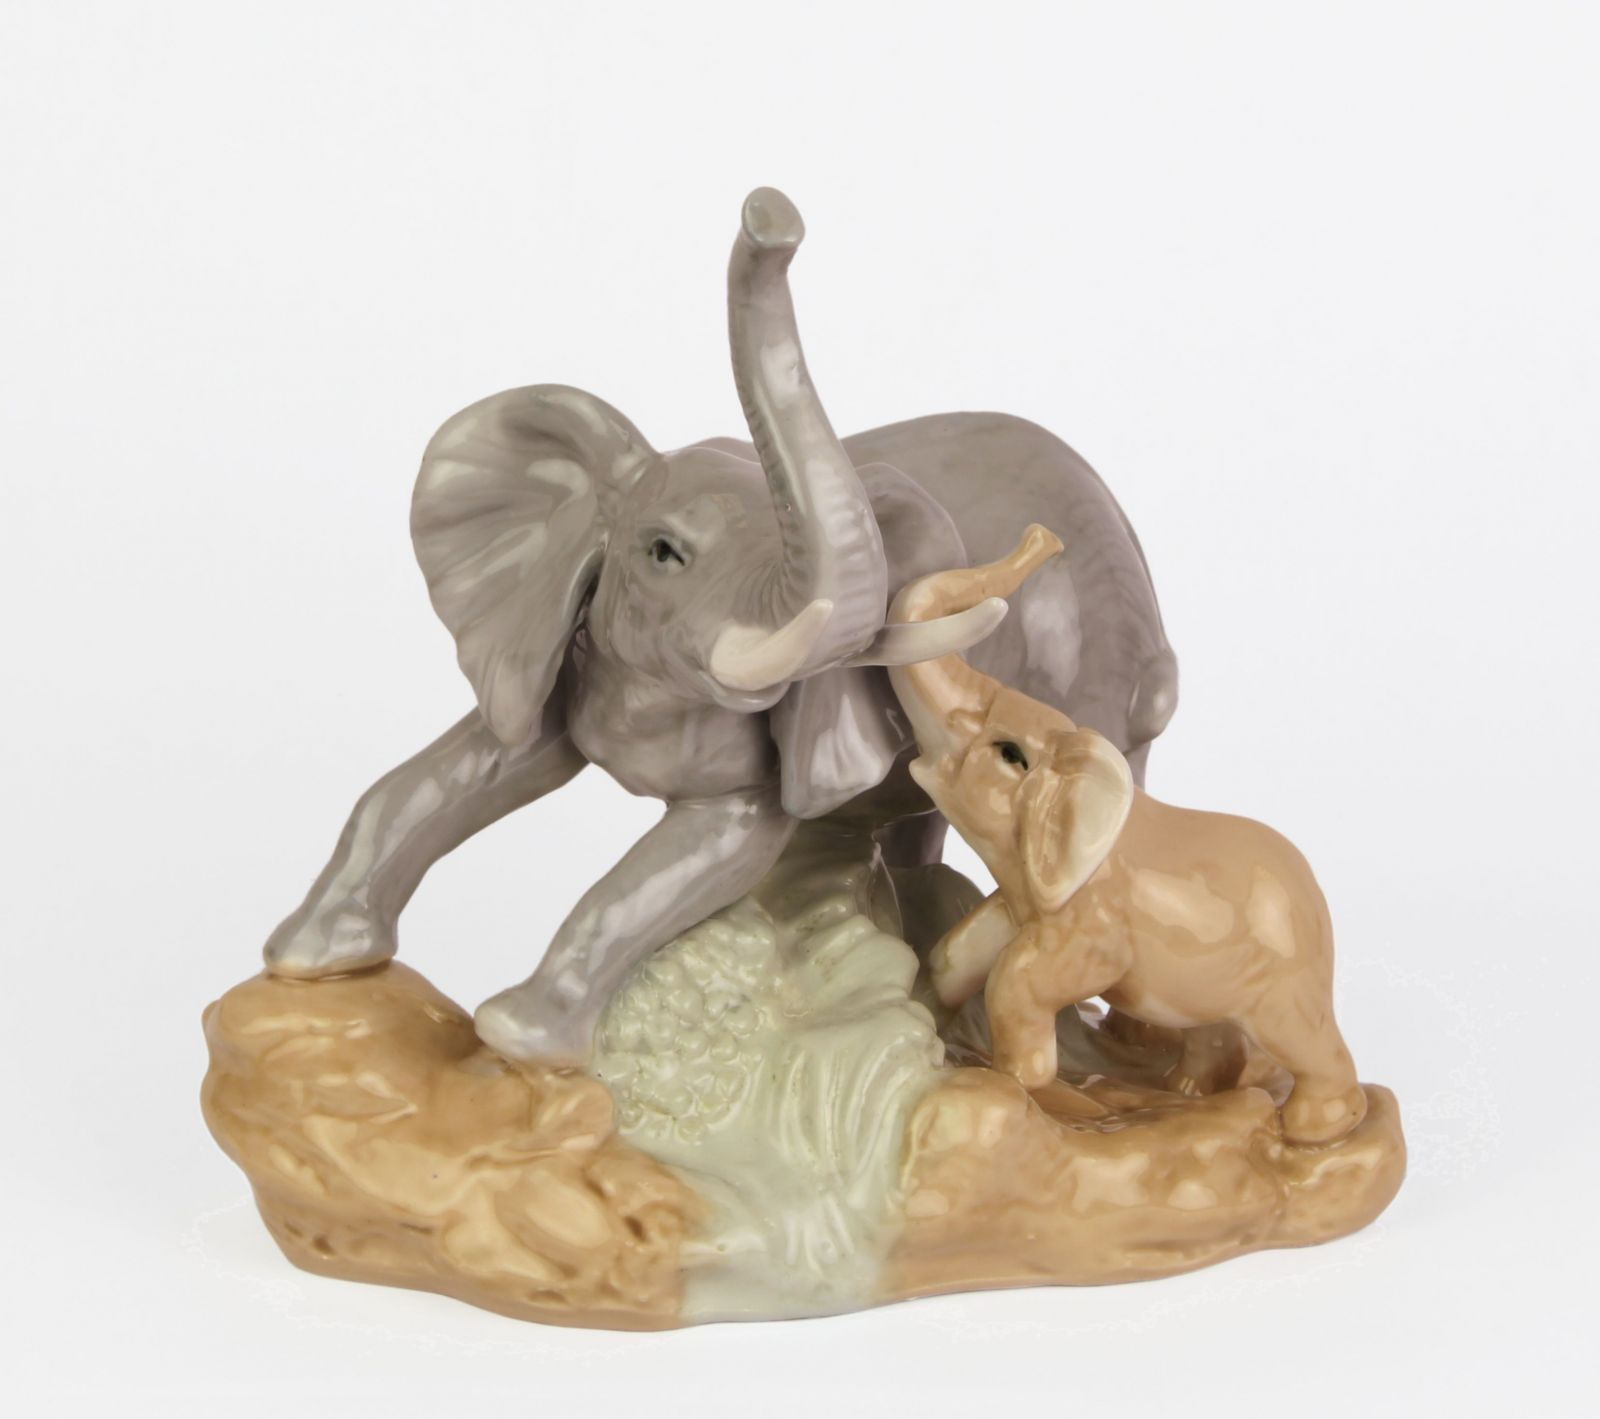 A PORCELAIN GROUP OF AN ELEPHANT AND CALF